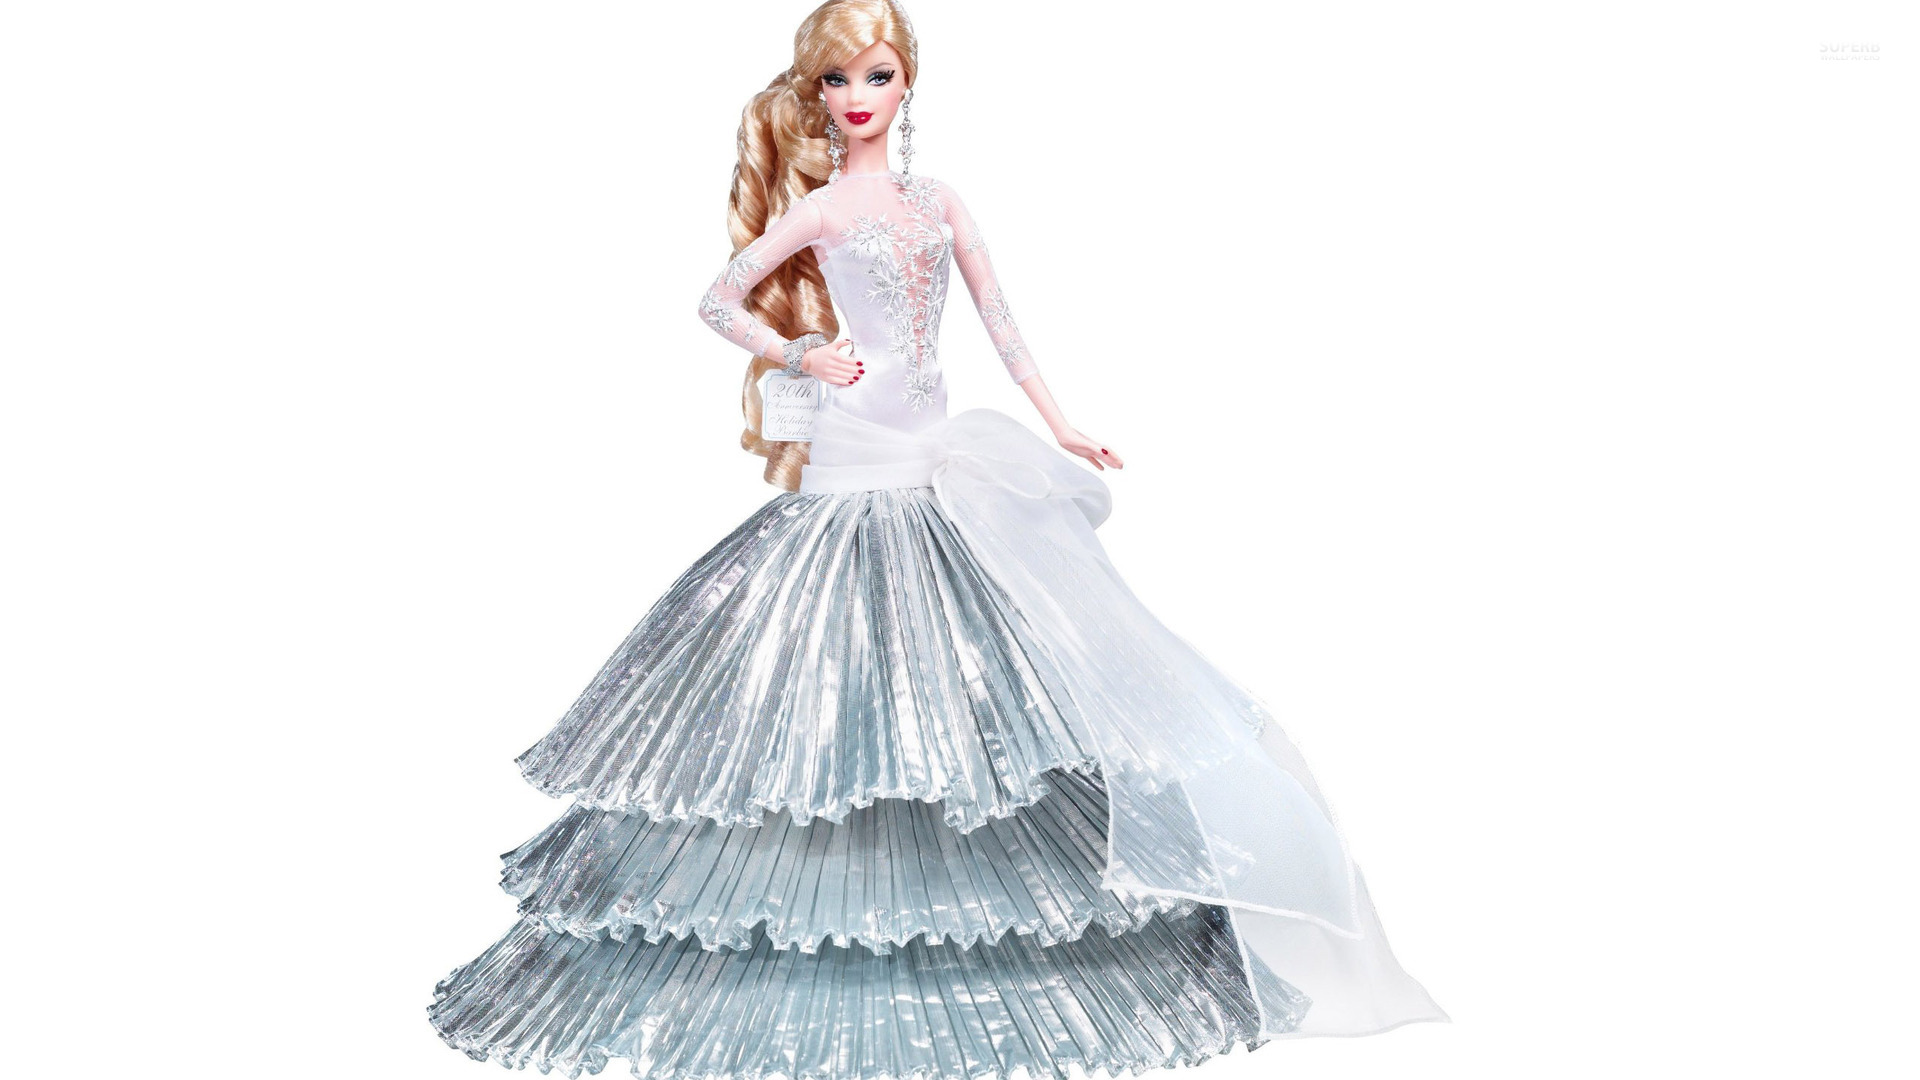 4k Barbie Dolls Wallpapers High Quality Download Free